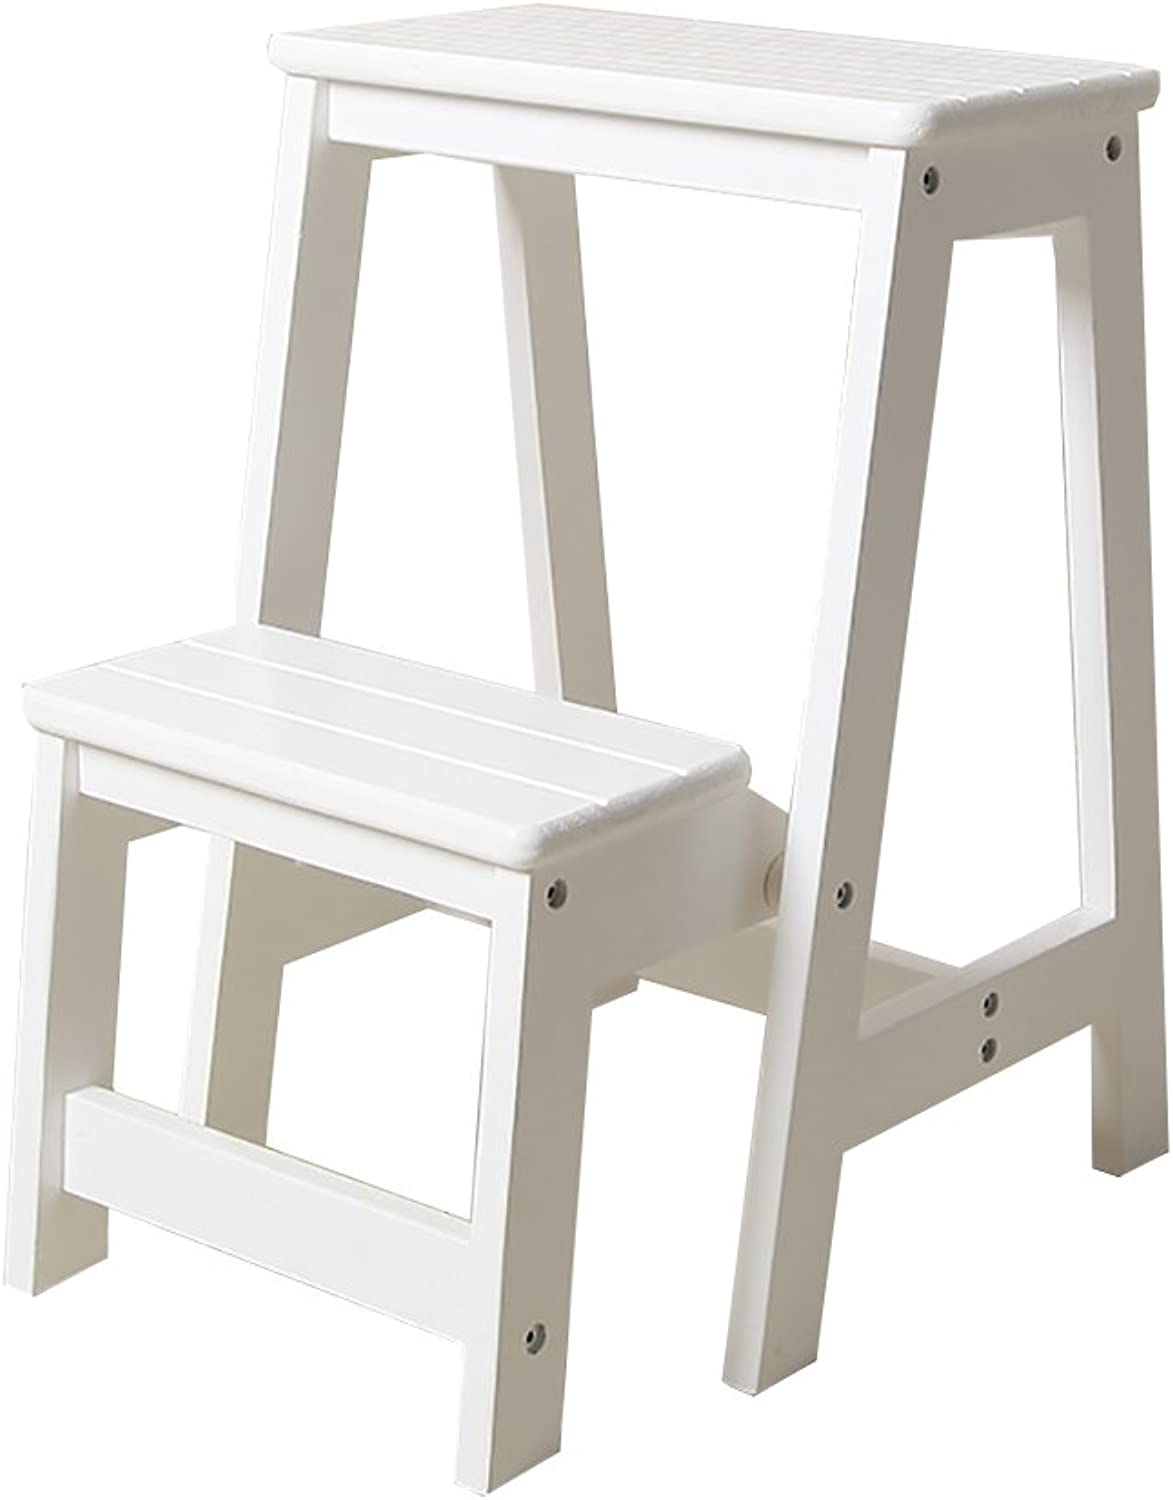 YD Step Stool Wood Folding Step Stool Adults & Kids Kitchen Wooden Ladders Small Foot Stools Indoor Folding Stepladder Portable shoes Bench Flower Rack  &